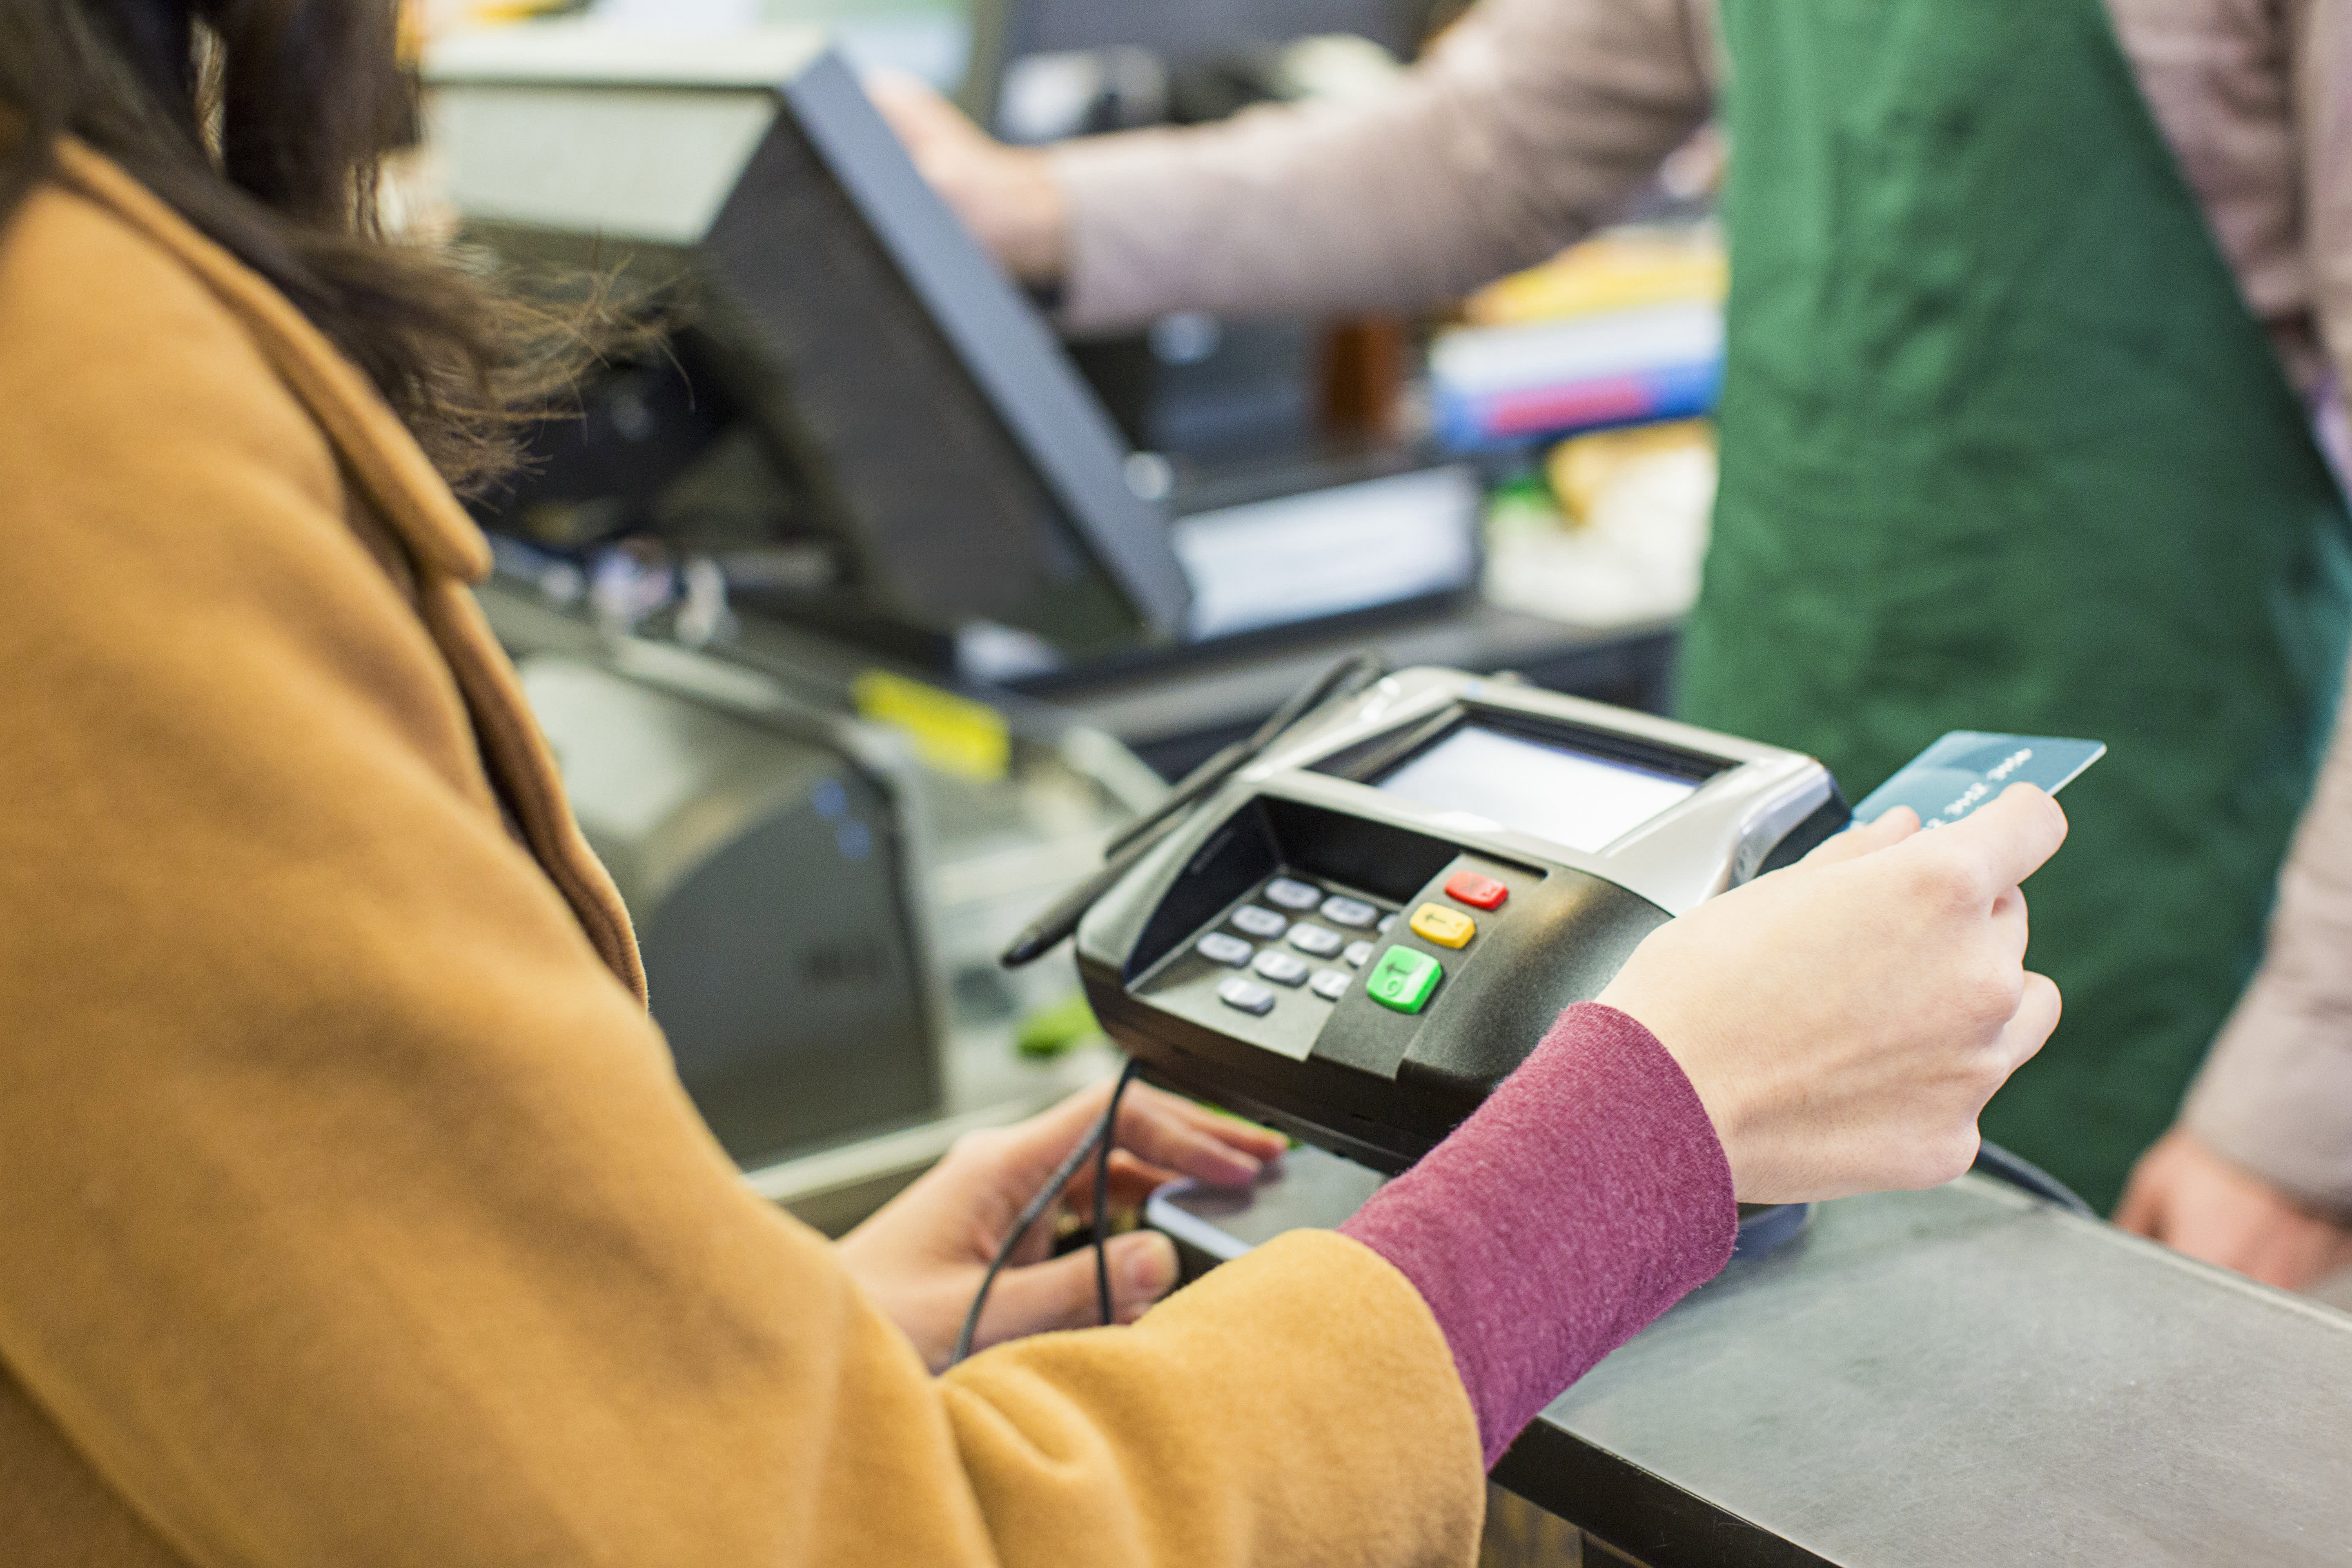 3 expensive mistakes people frequently make with their store credit cards